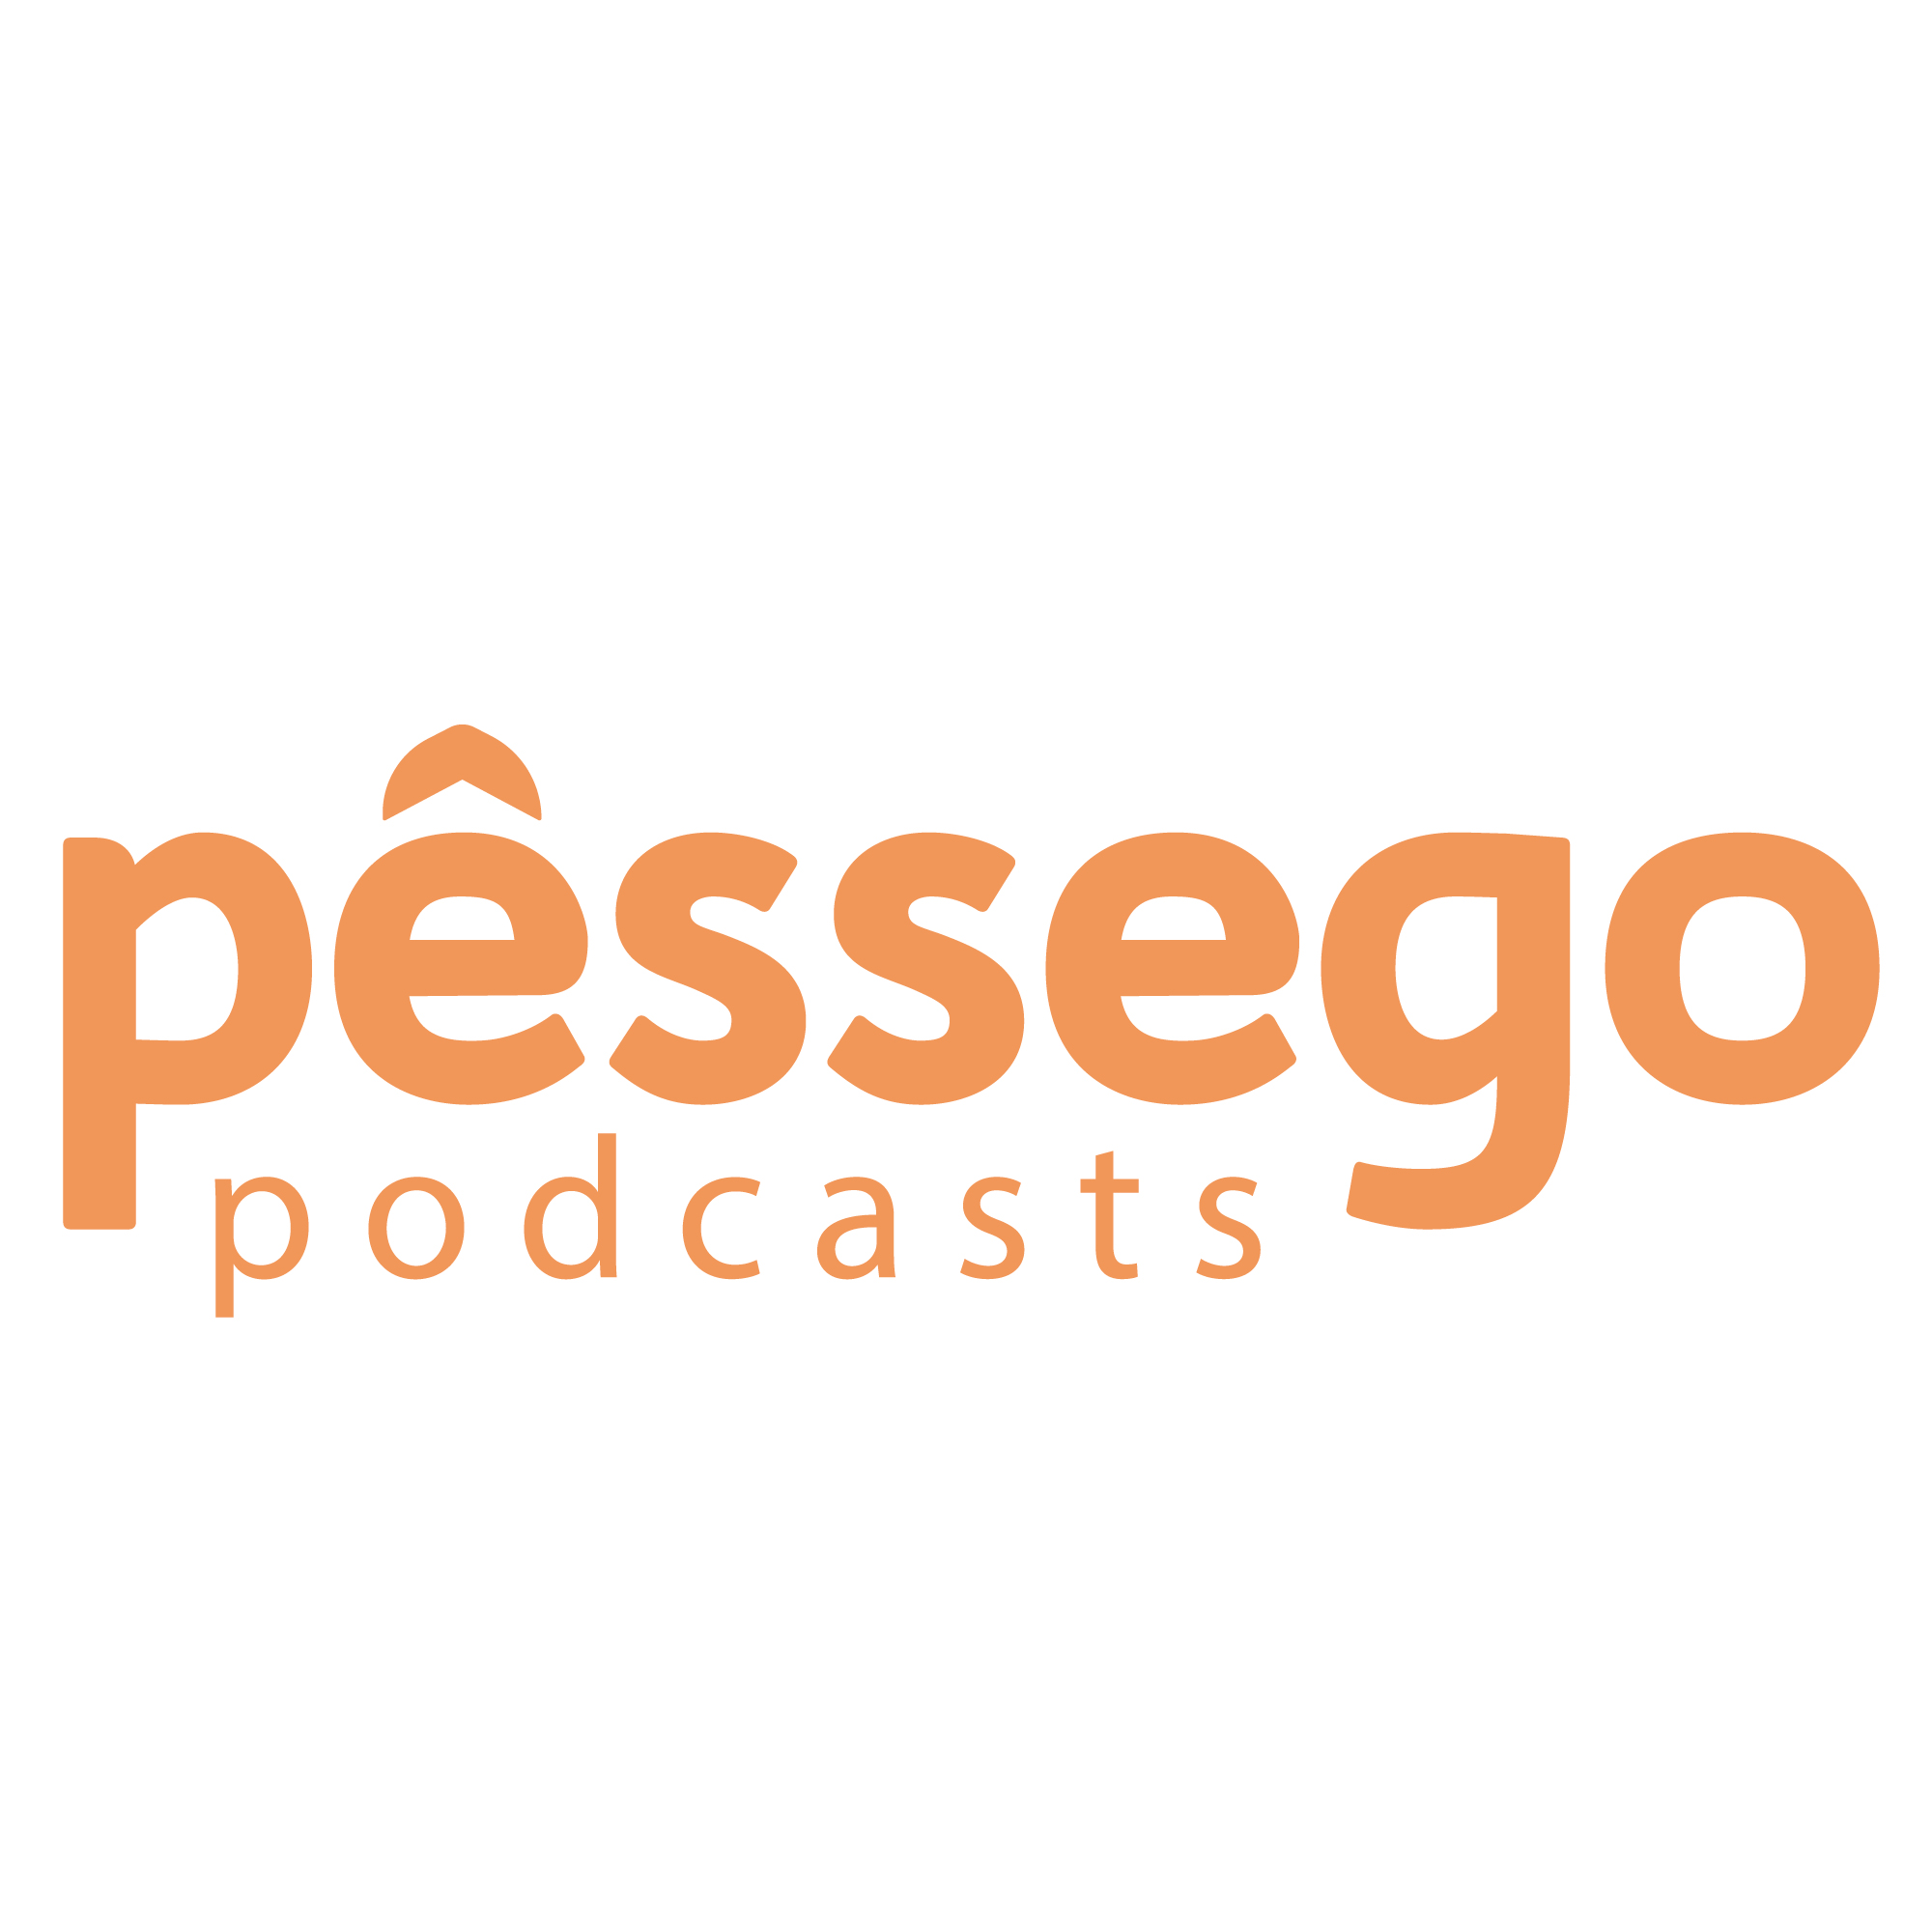 Pêssego Podcasts